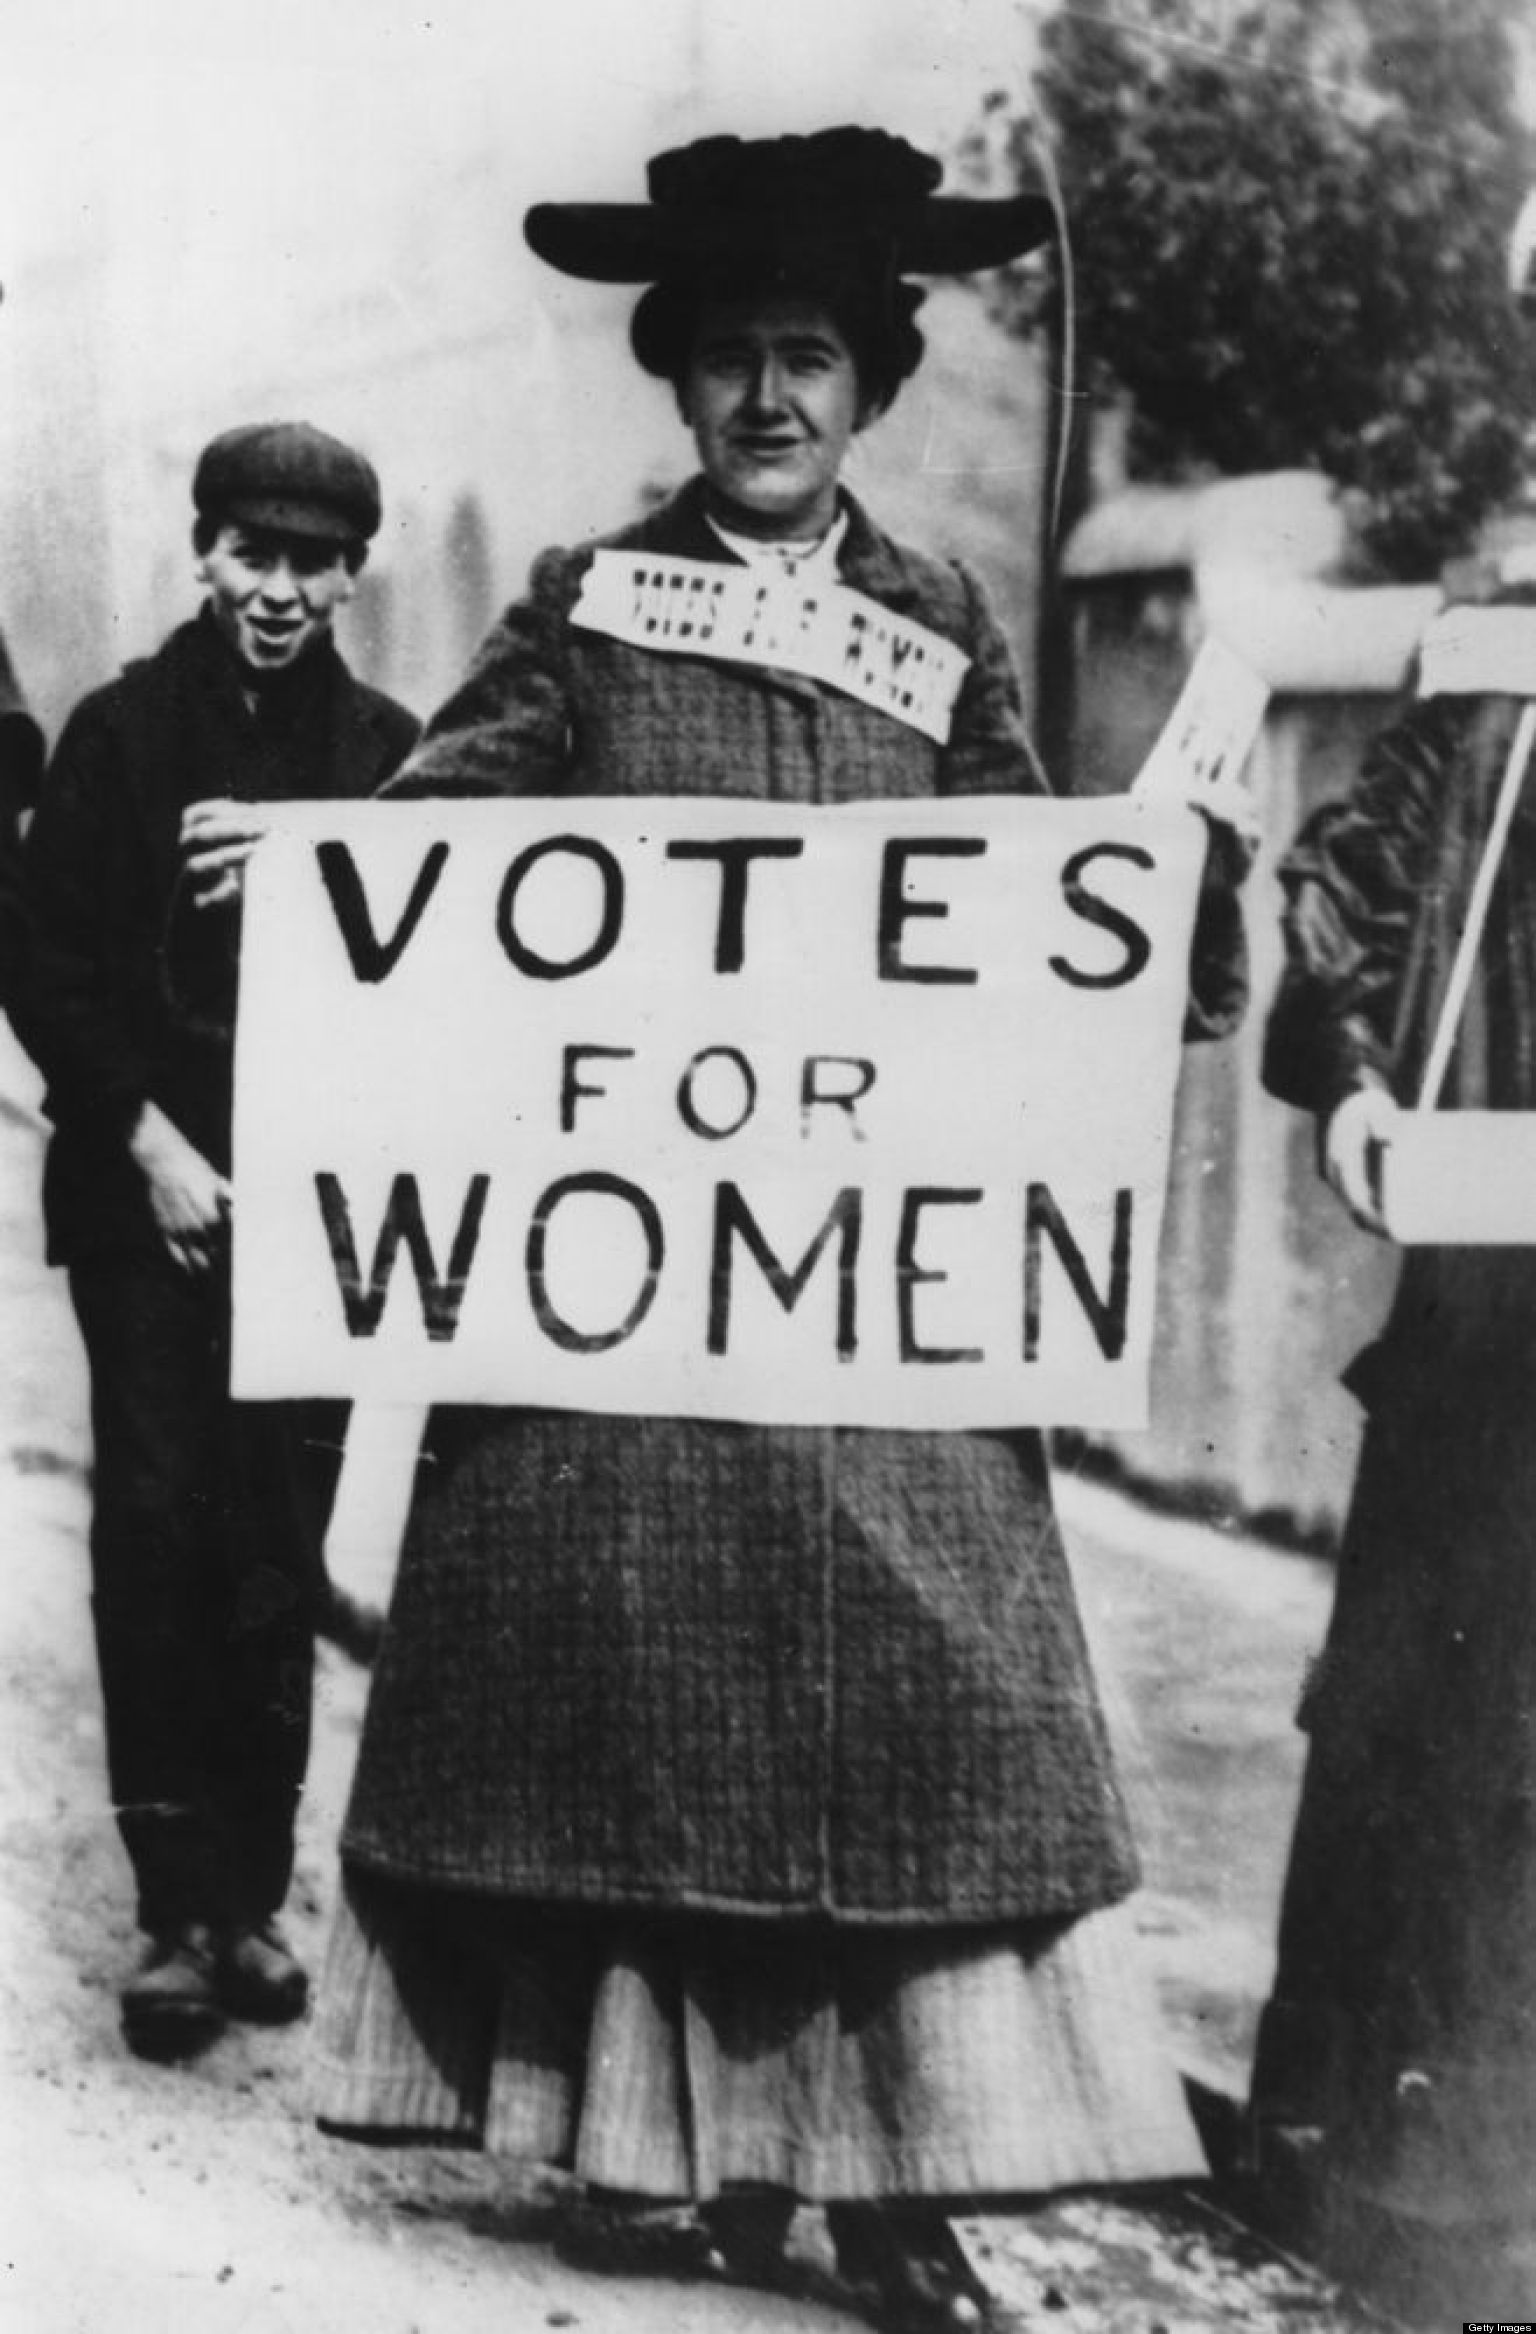 A history of womens rights in Toronto